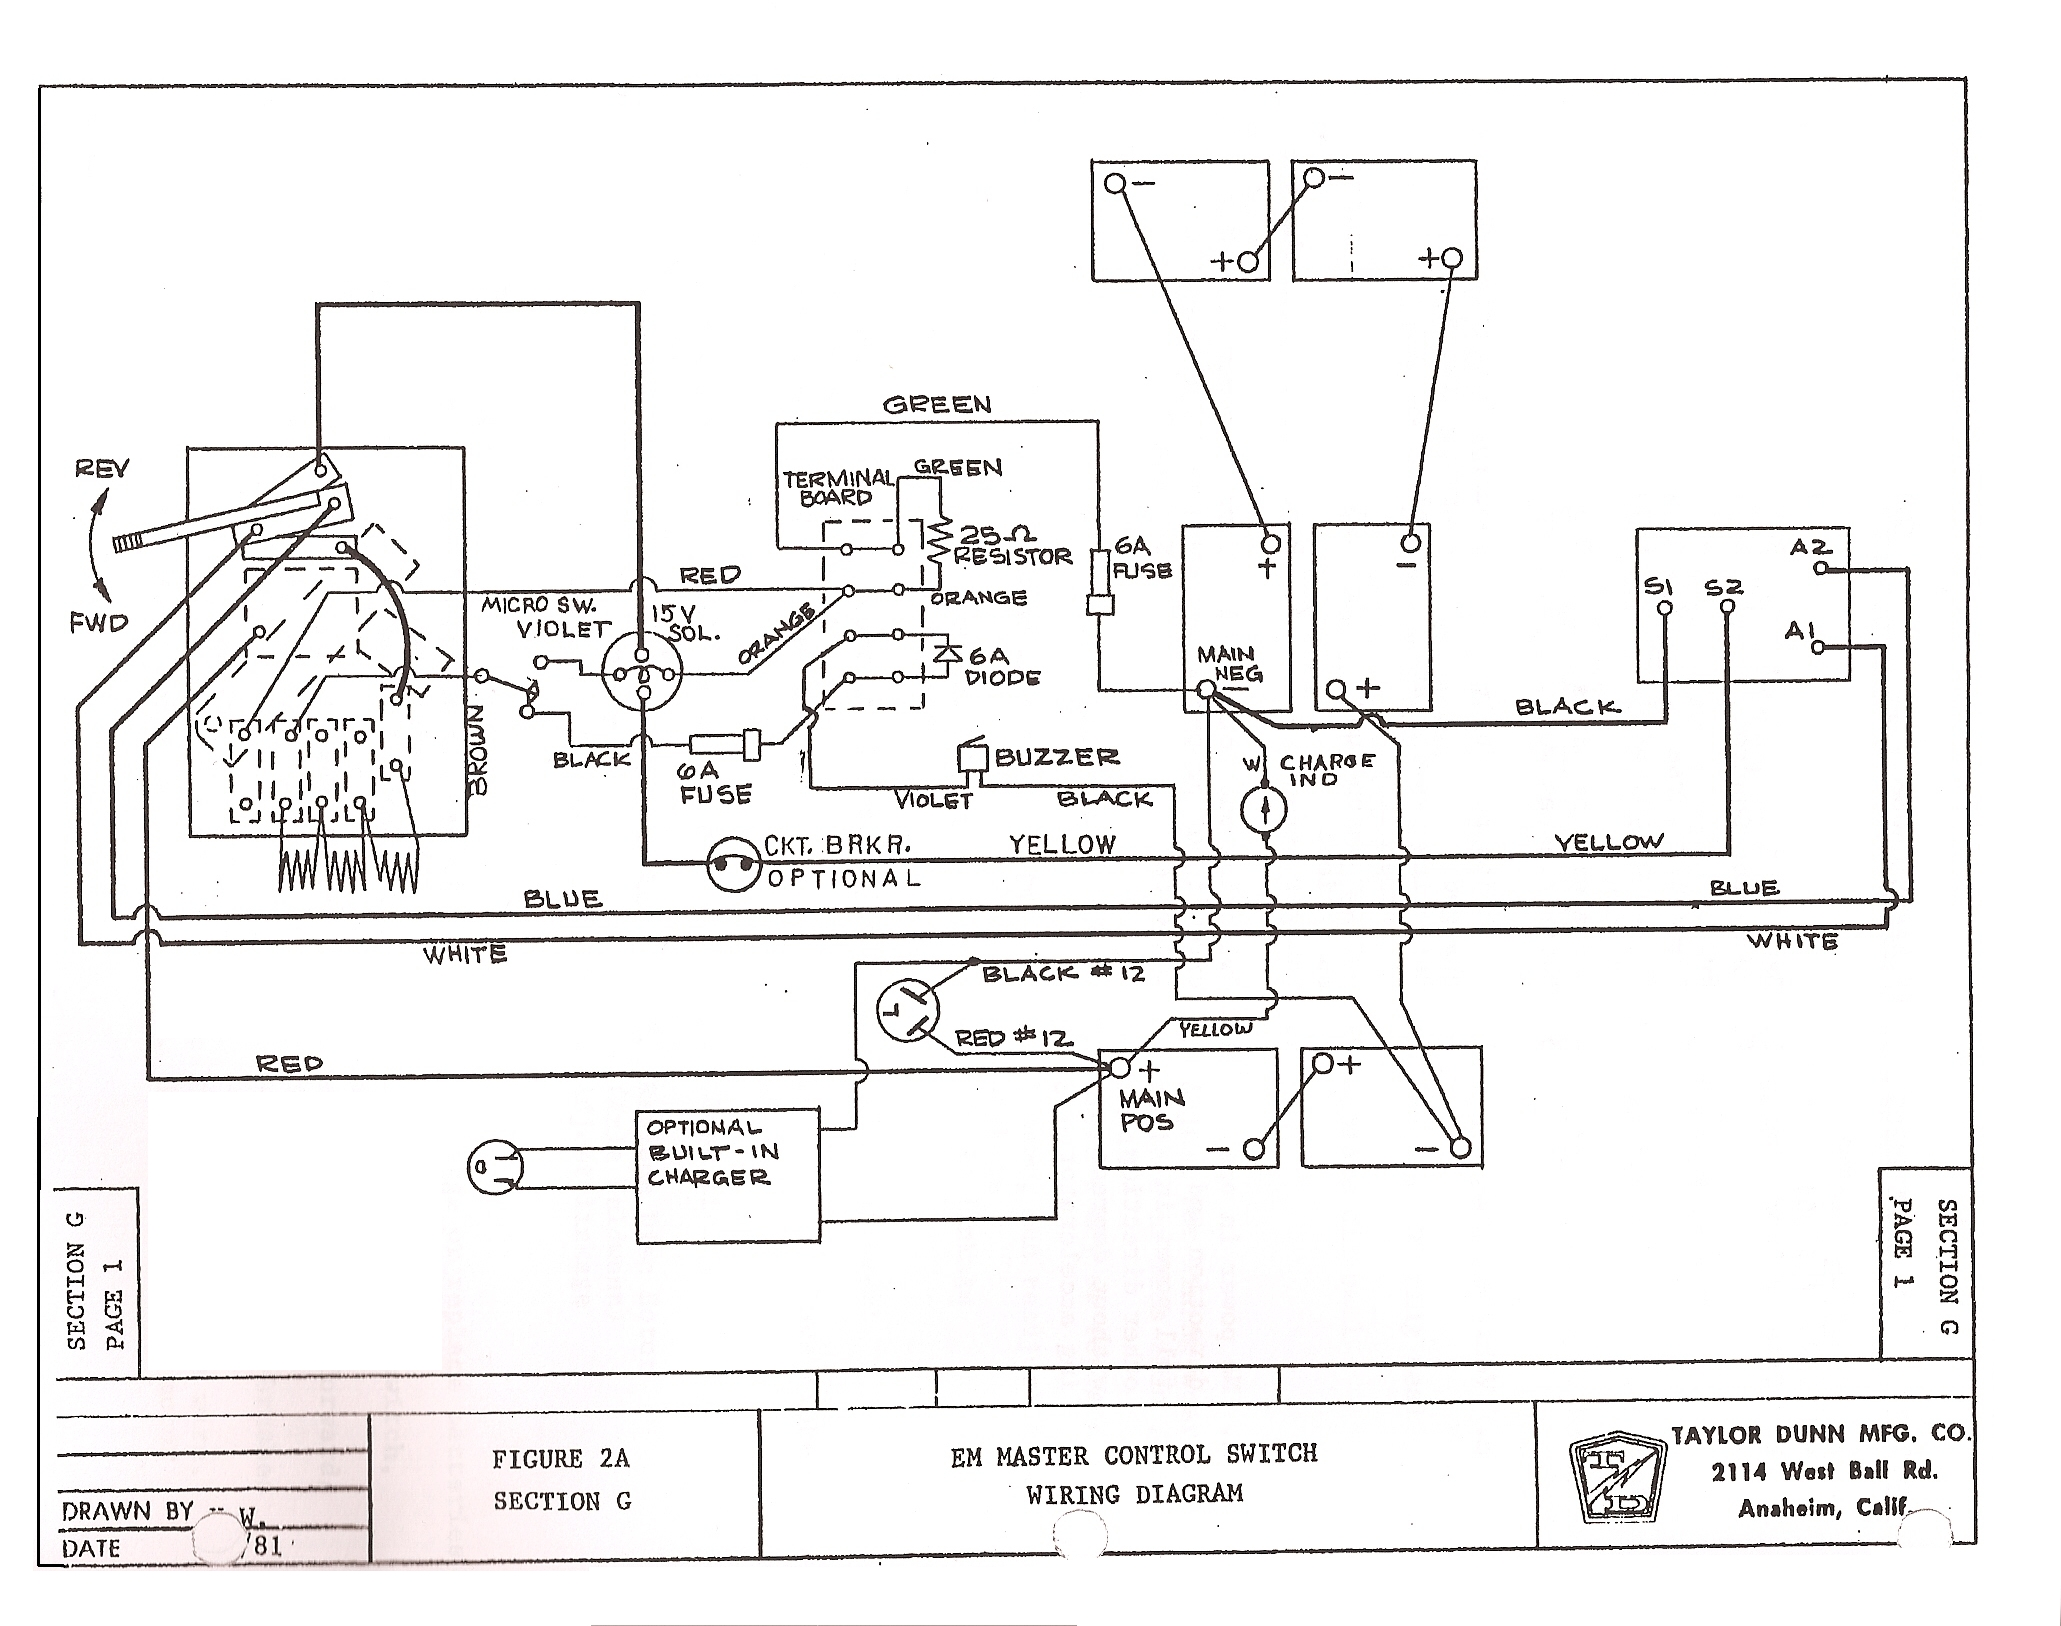 Taylor Dunn Wiring Diagram B2 48 | Wiring Diagram on